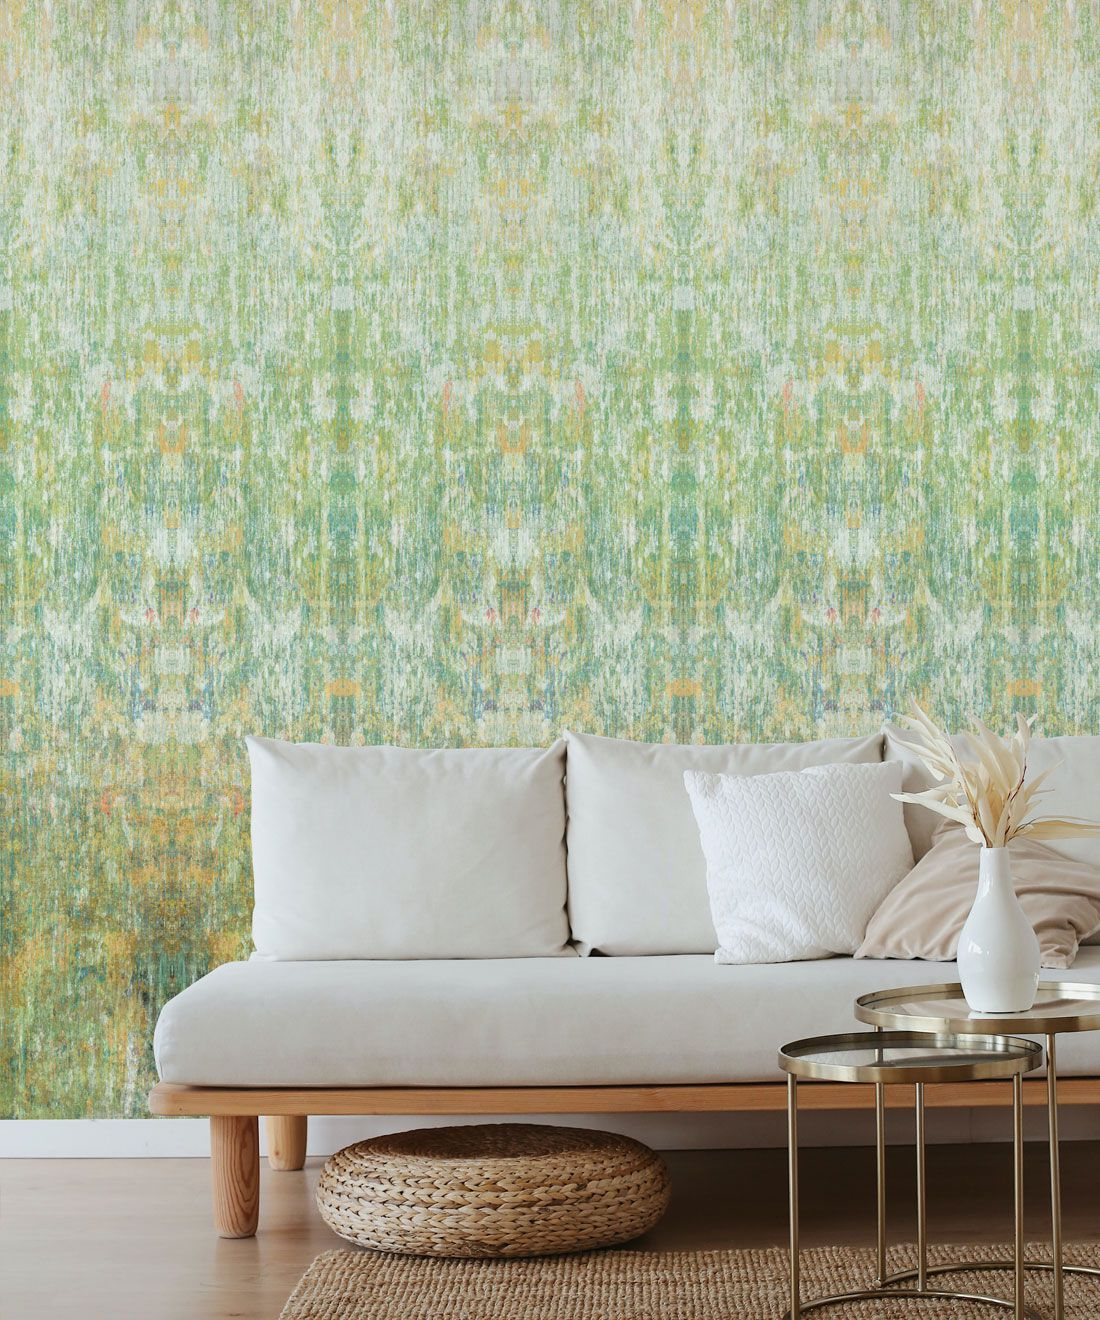 Patina Wallpaper by Simcox • Color Moss • Abstract Wallpaper • insitu